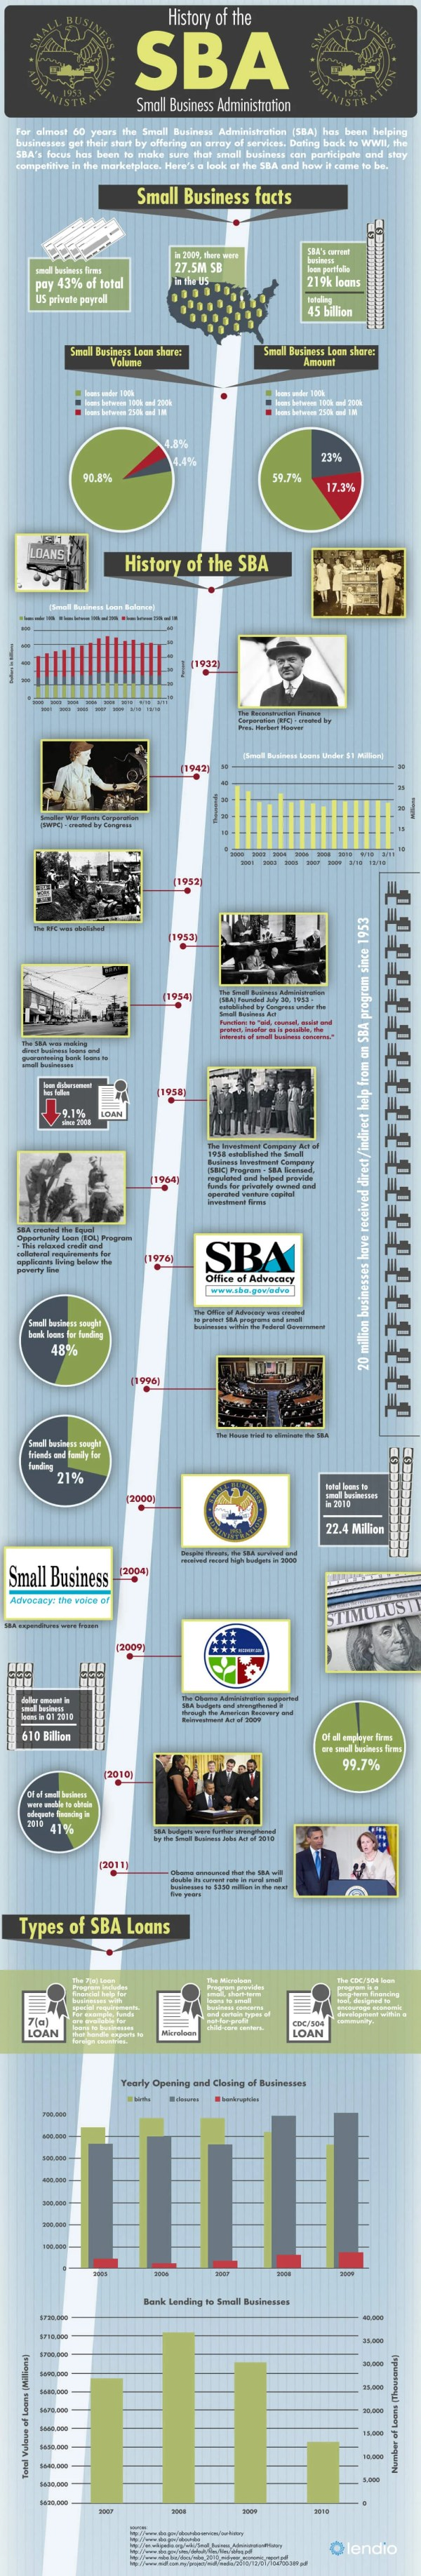 History Of The Small Business Administration 1